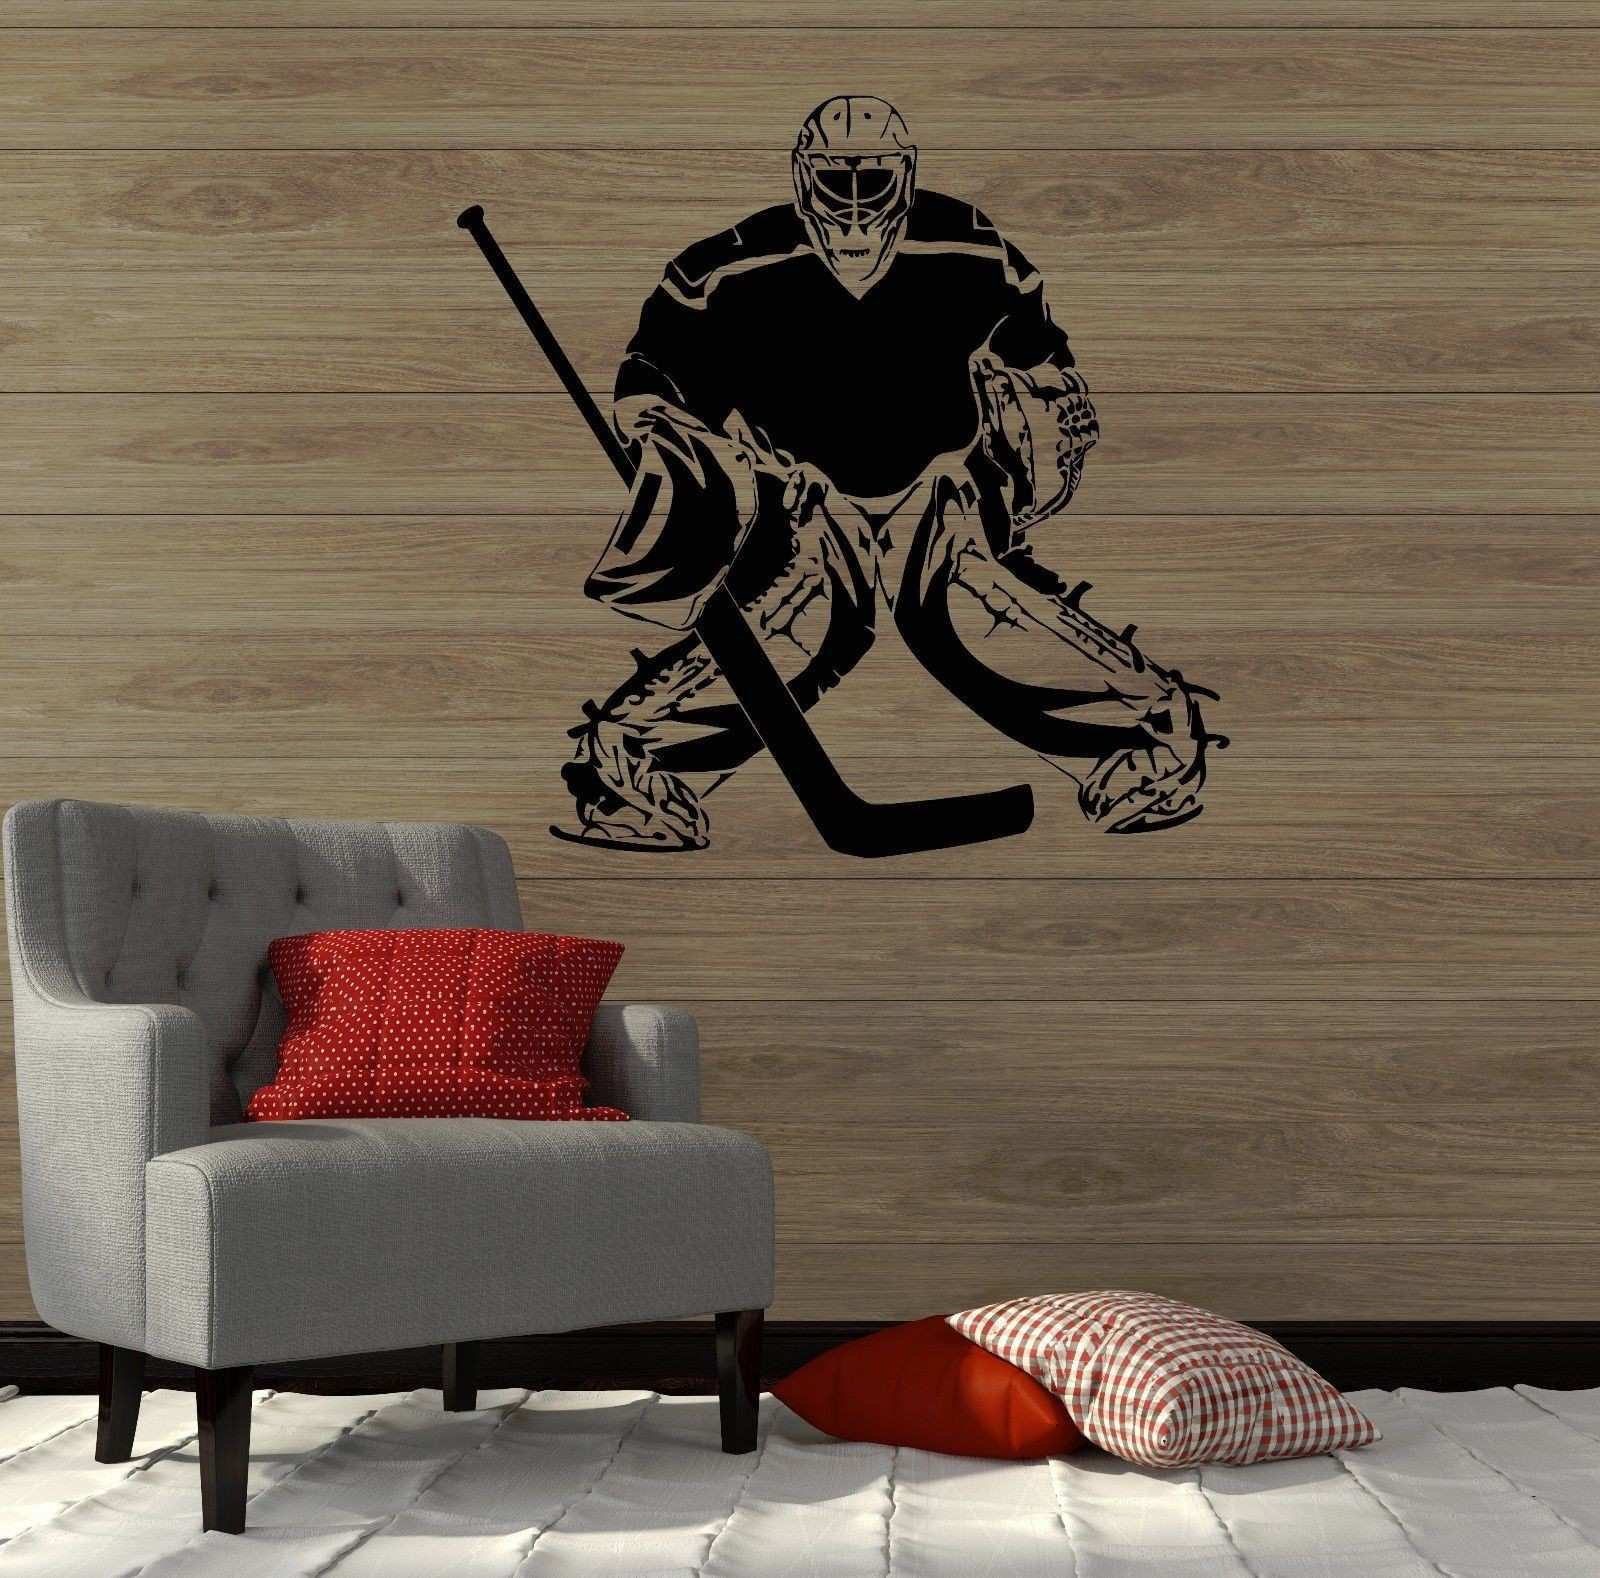 Home Decor Ice Hockey Girls Decal Wall Art Mural Bedroom Sport Game